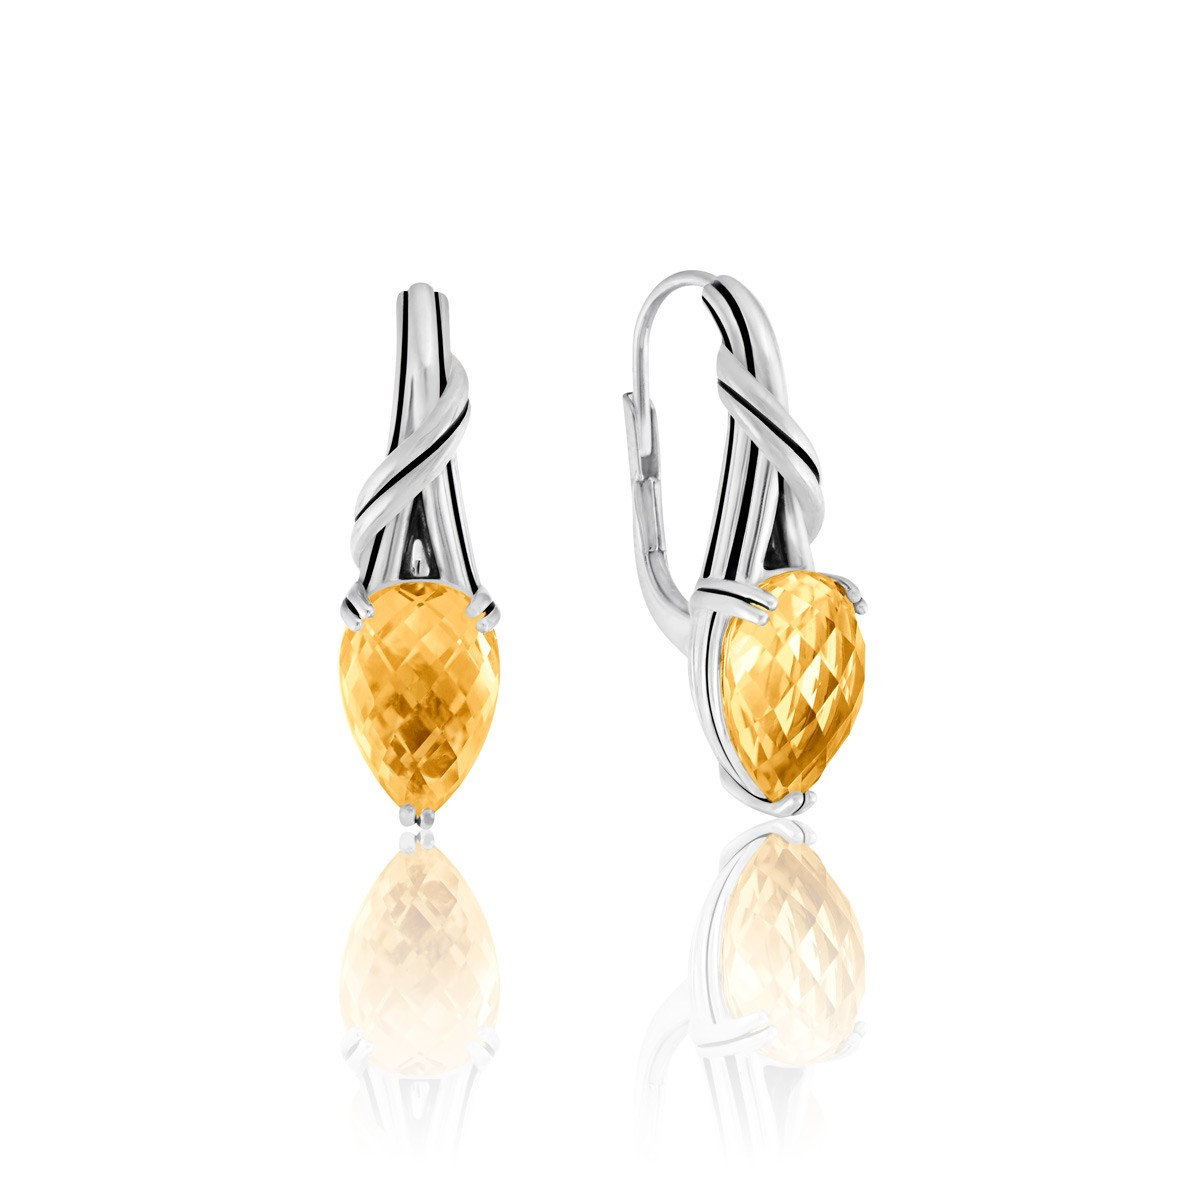 Fantasies Citrine Pear Drop Earrings in sterling silver